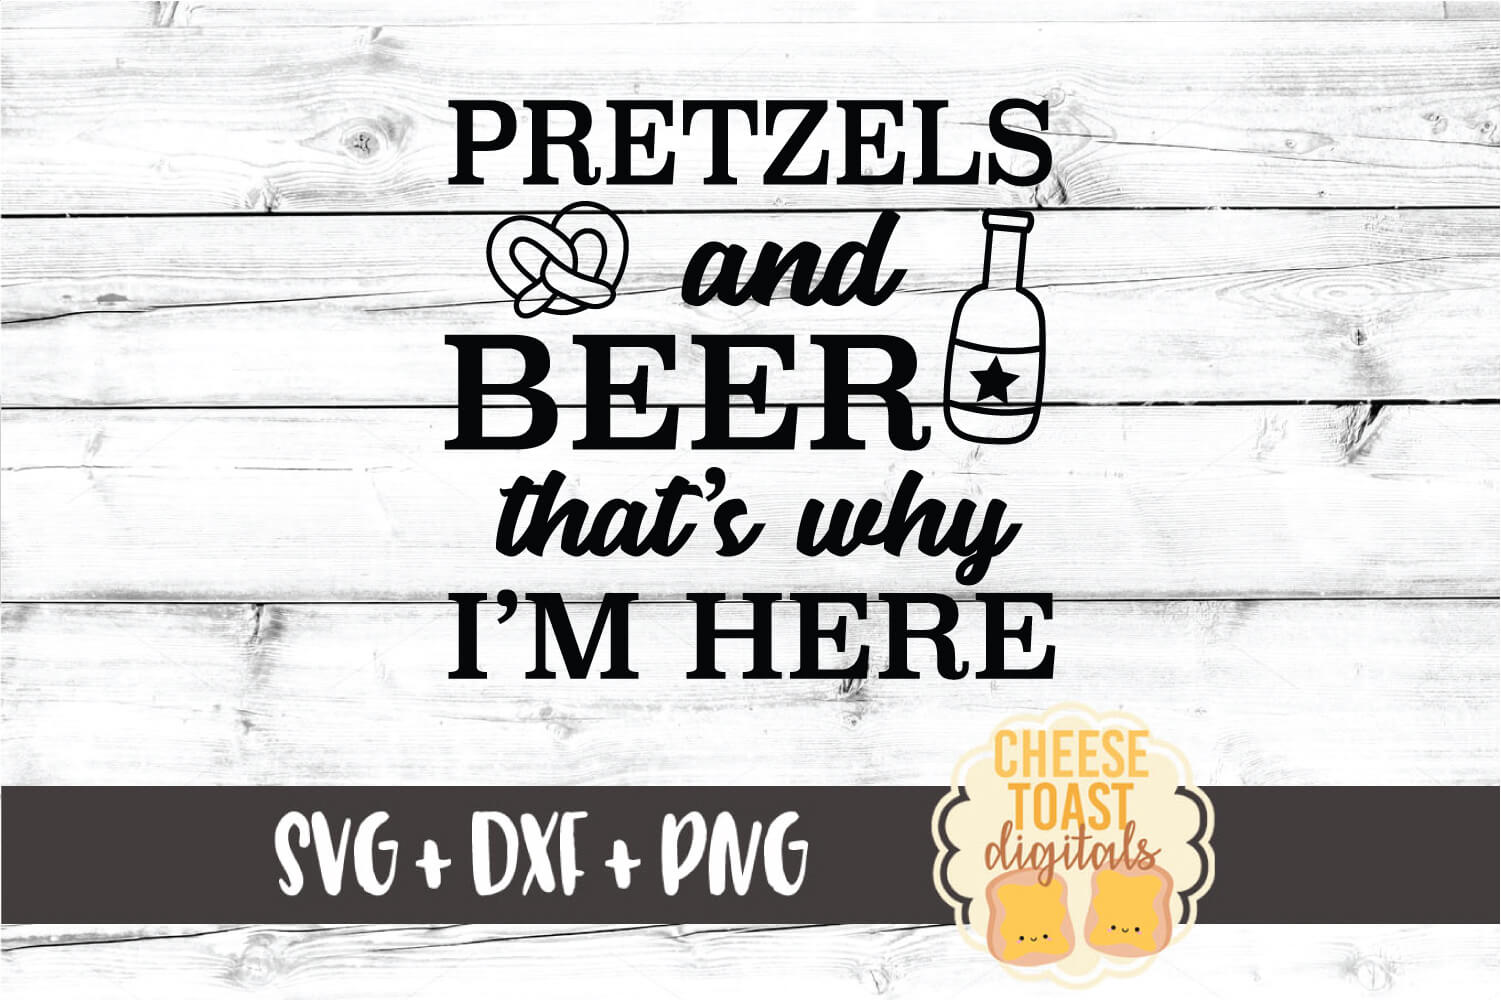 Pretzels and Beer That's Why I'm Here - Oktoberfest SVG File example image 2